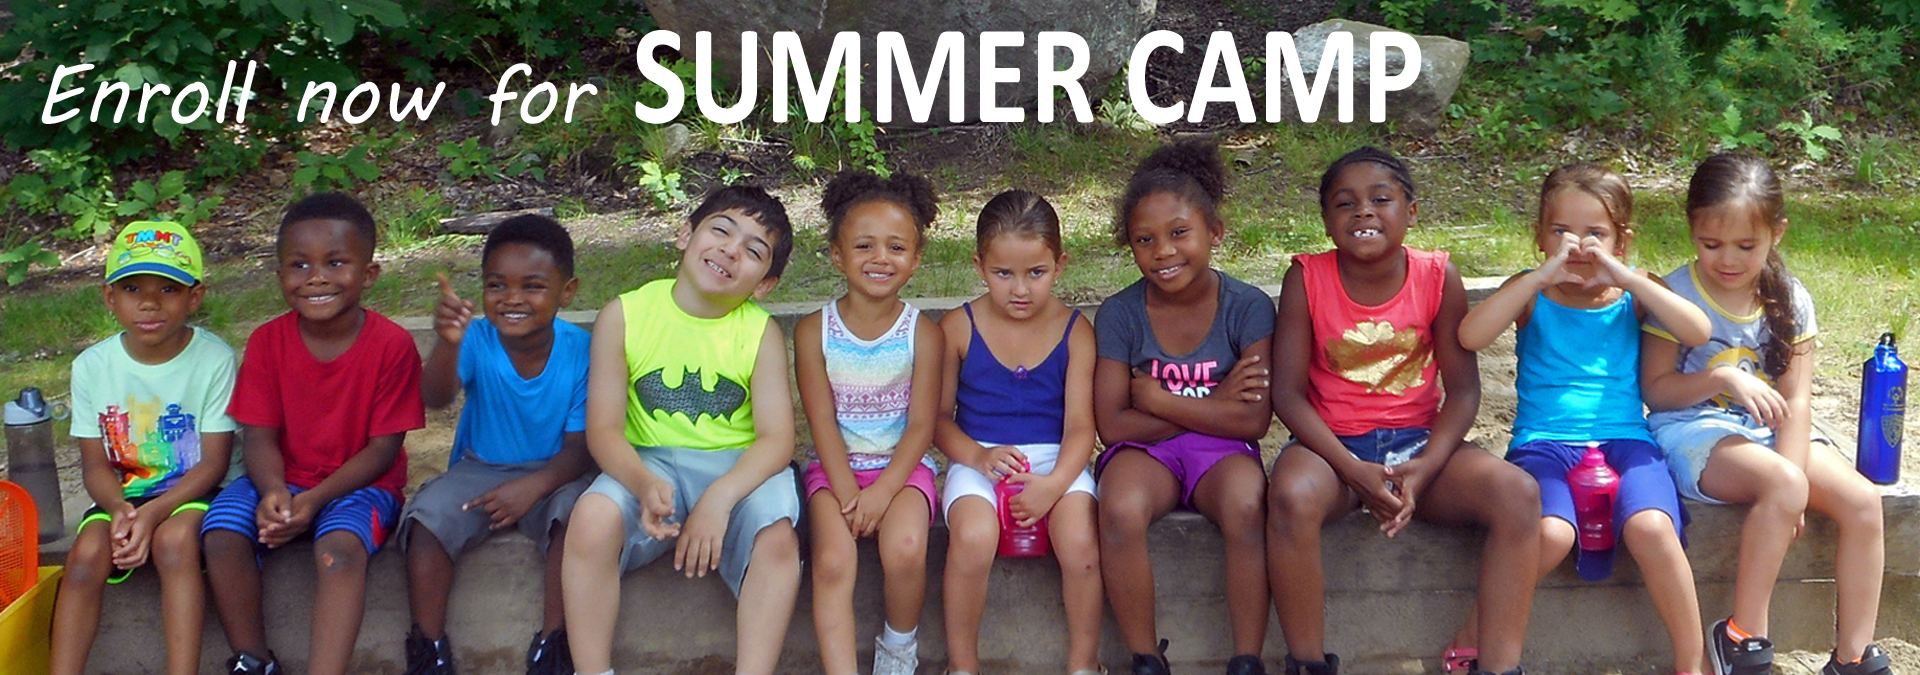 Enroll now for Summer Camp